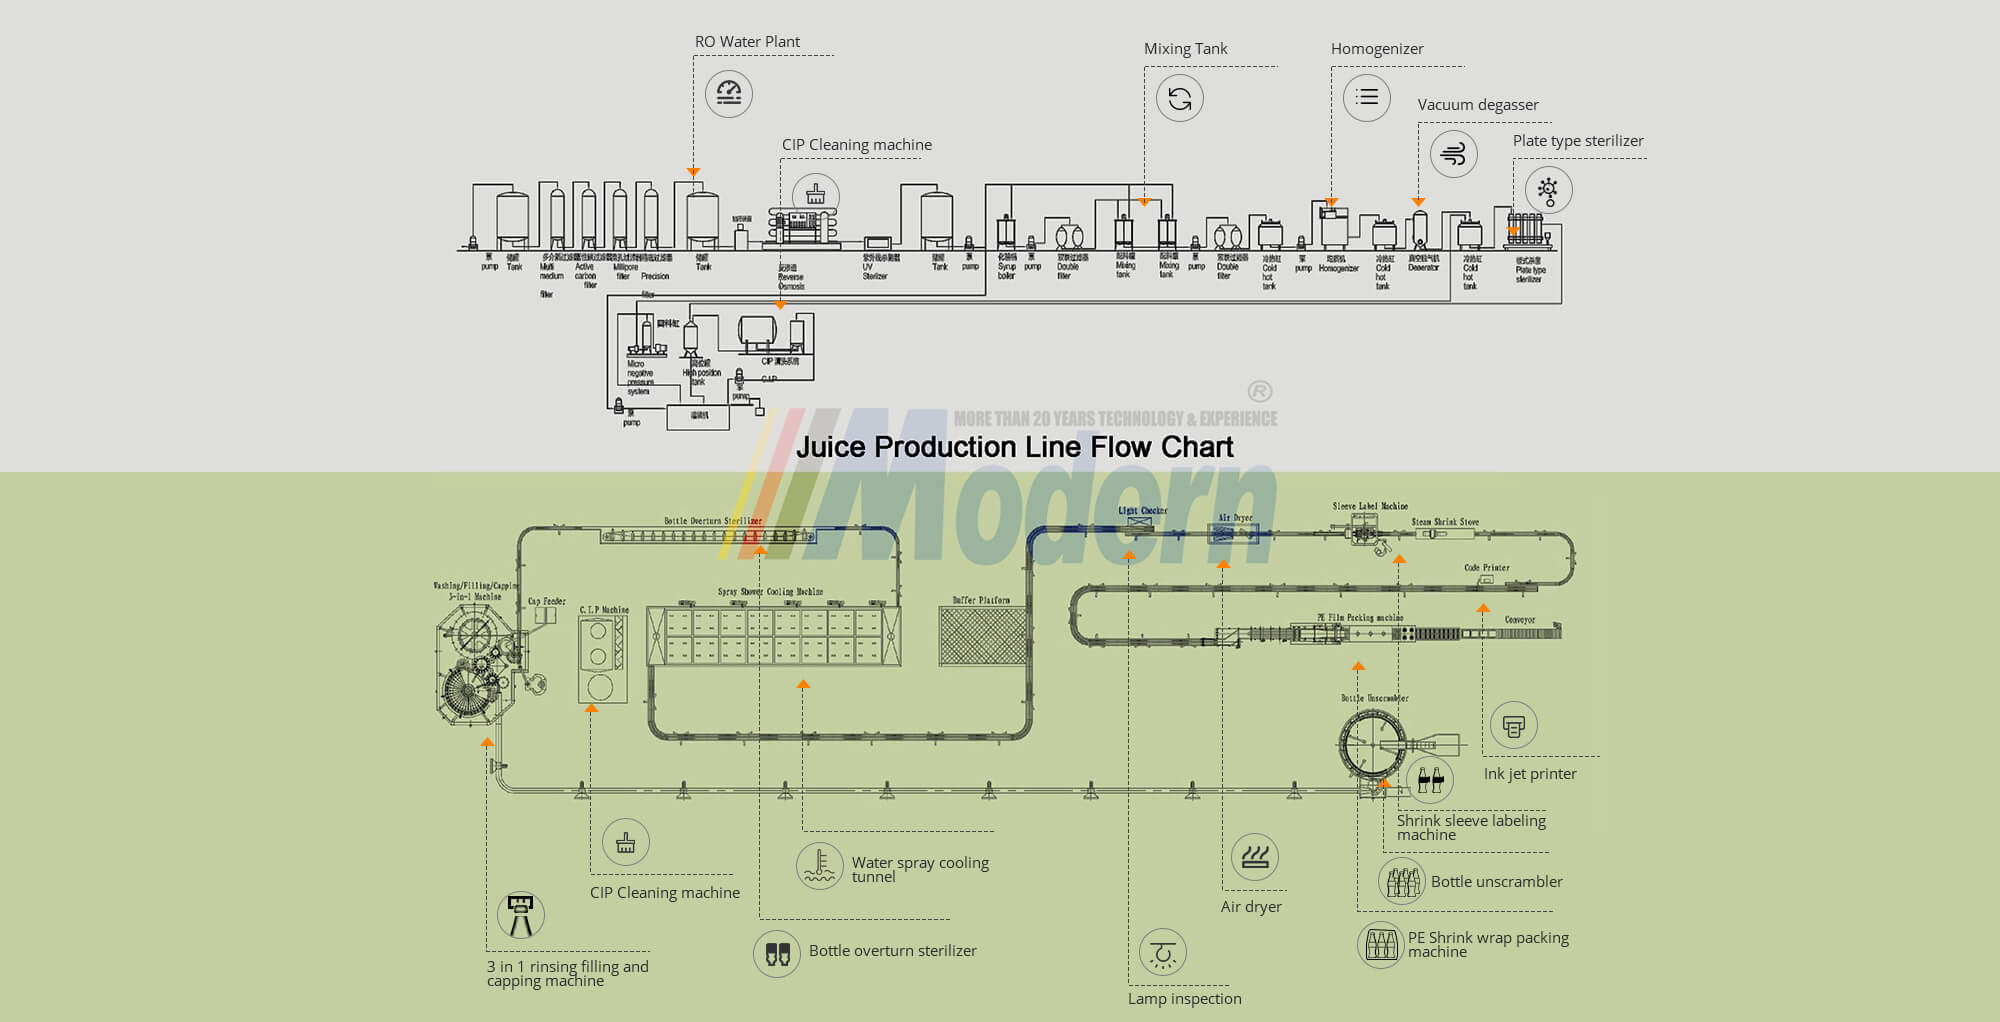 Juice Production Line Flow Chart